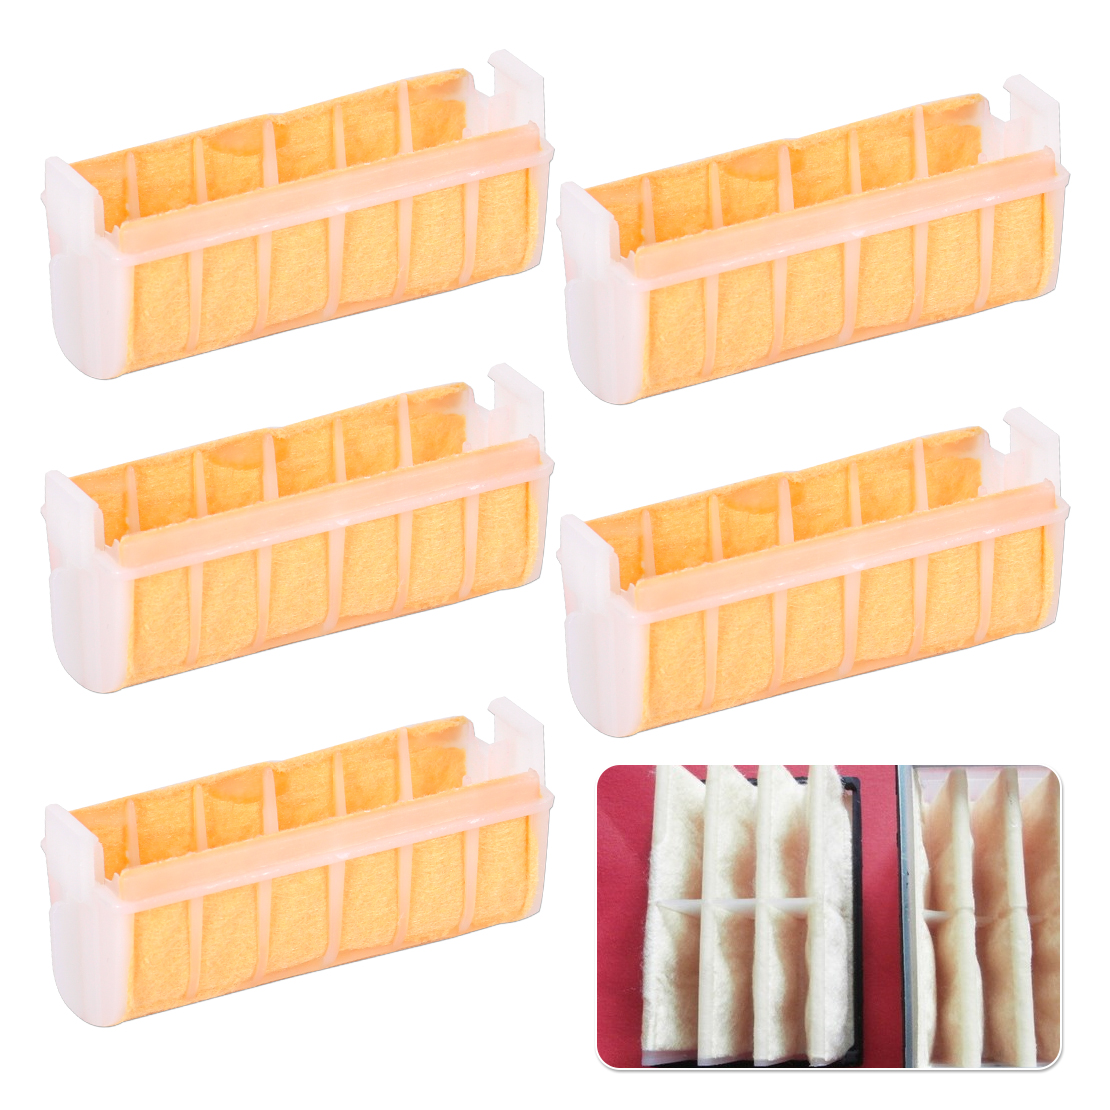 LETAOSK New 5 Pcs Air Filter Replacement Fit For Stihl MS210 MS230 MS250 021 023 025 Chainsaw